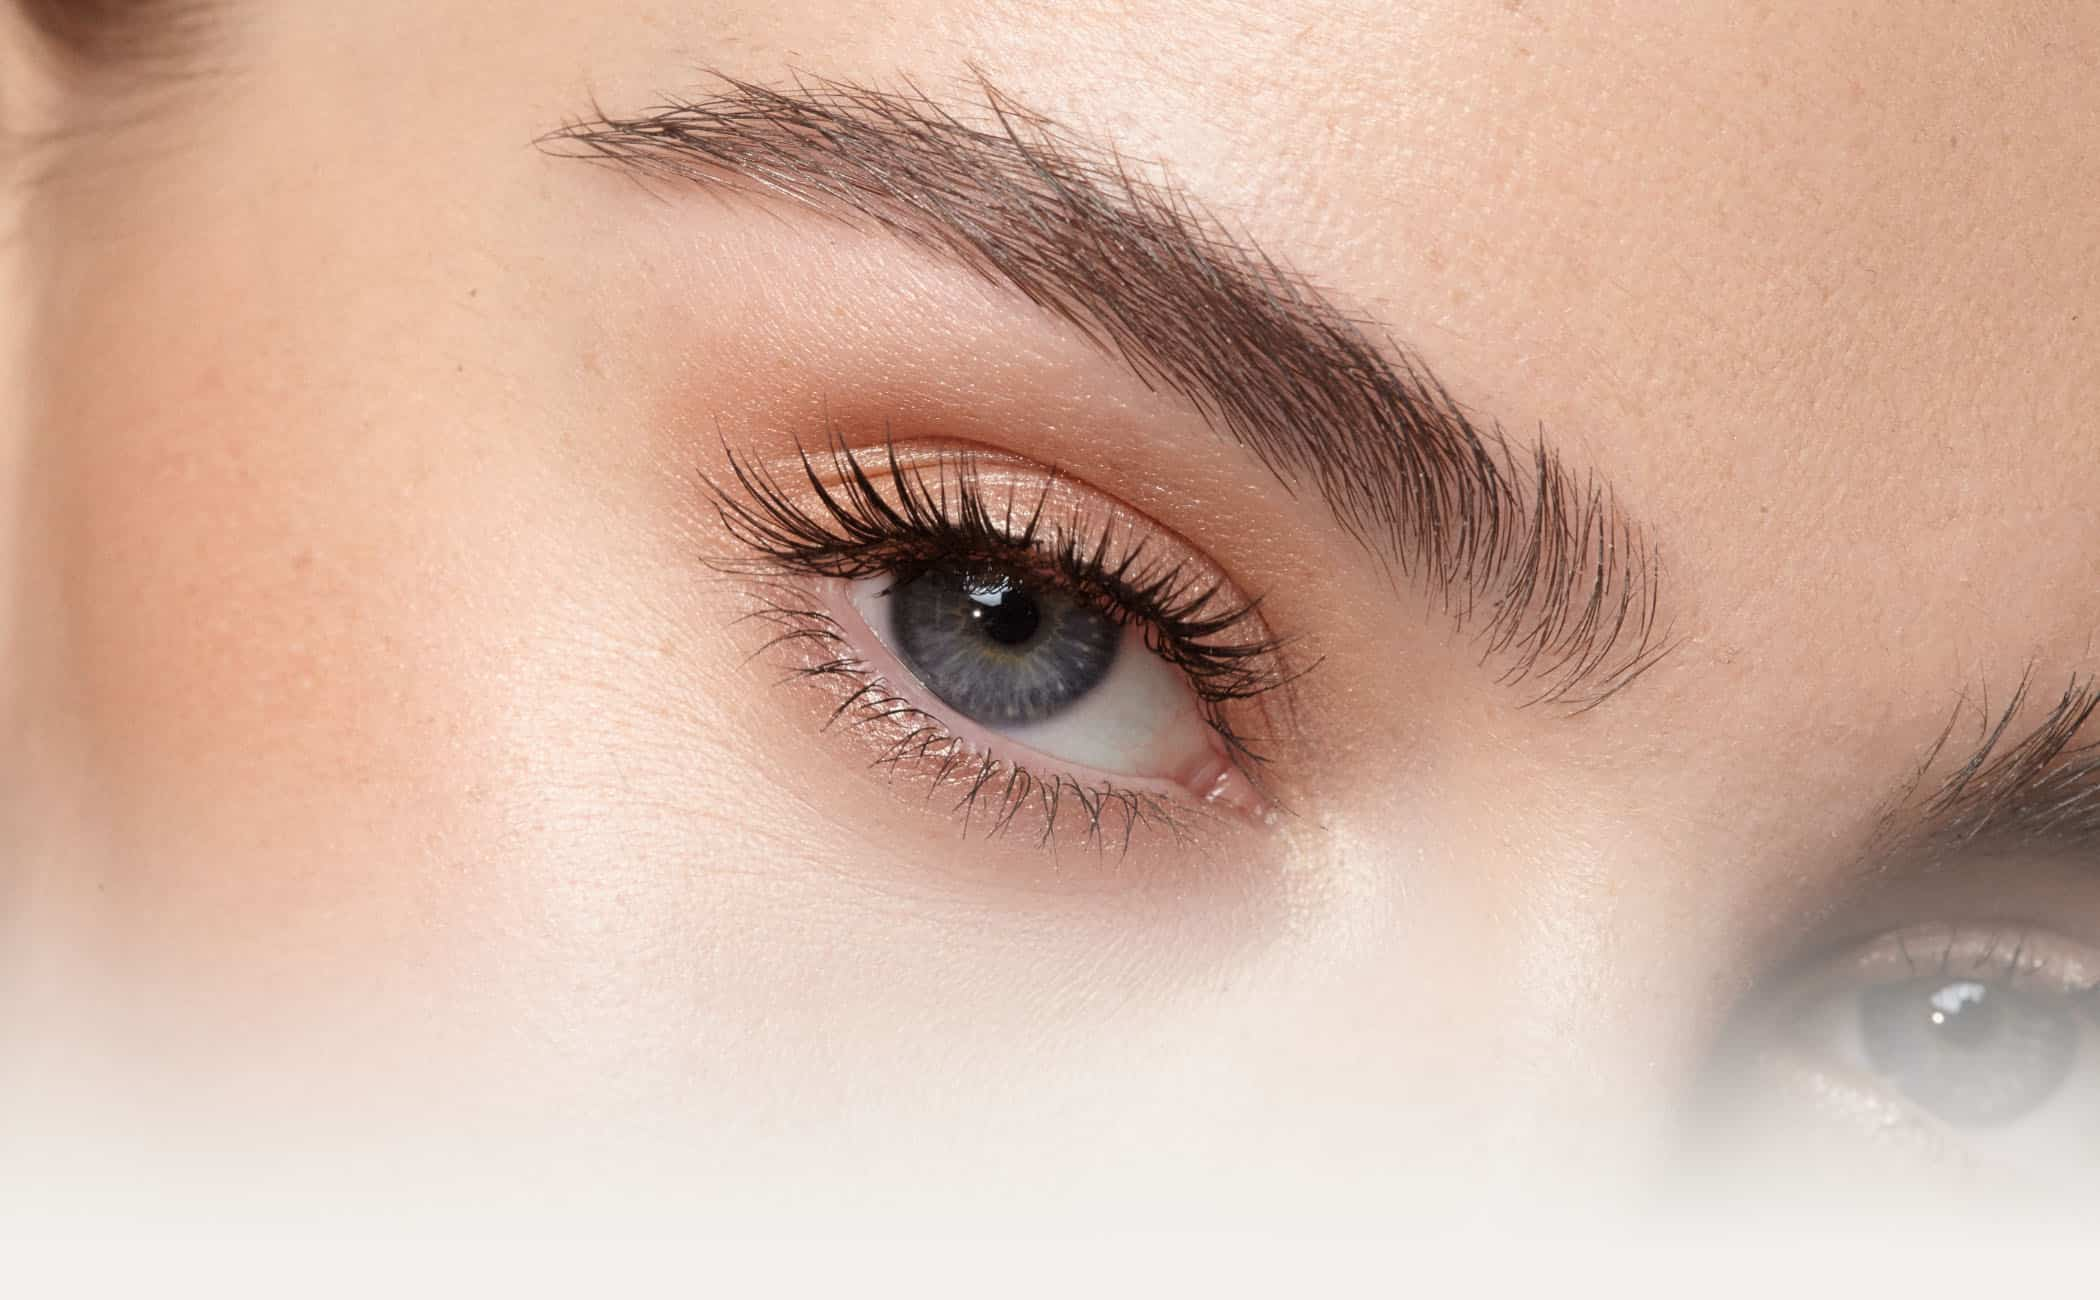 Is Blepharoplasty a Quick Recovery Under Local Anesthesia